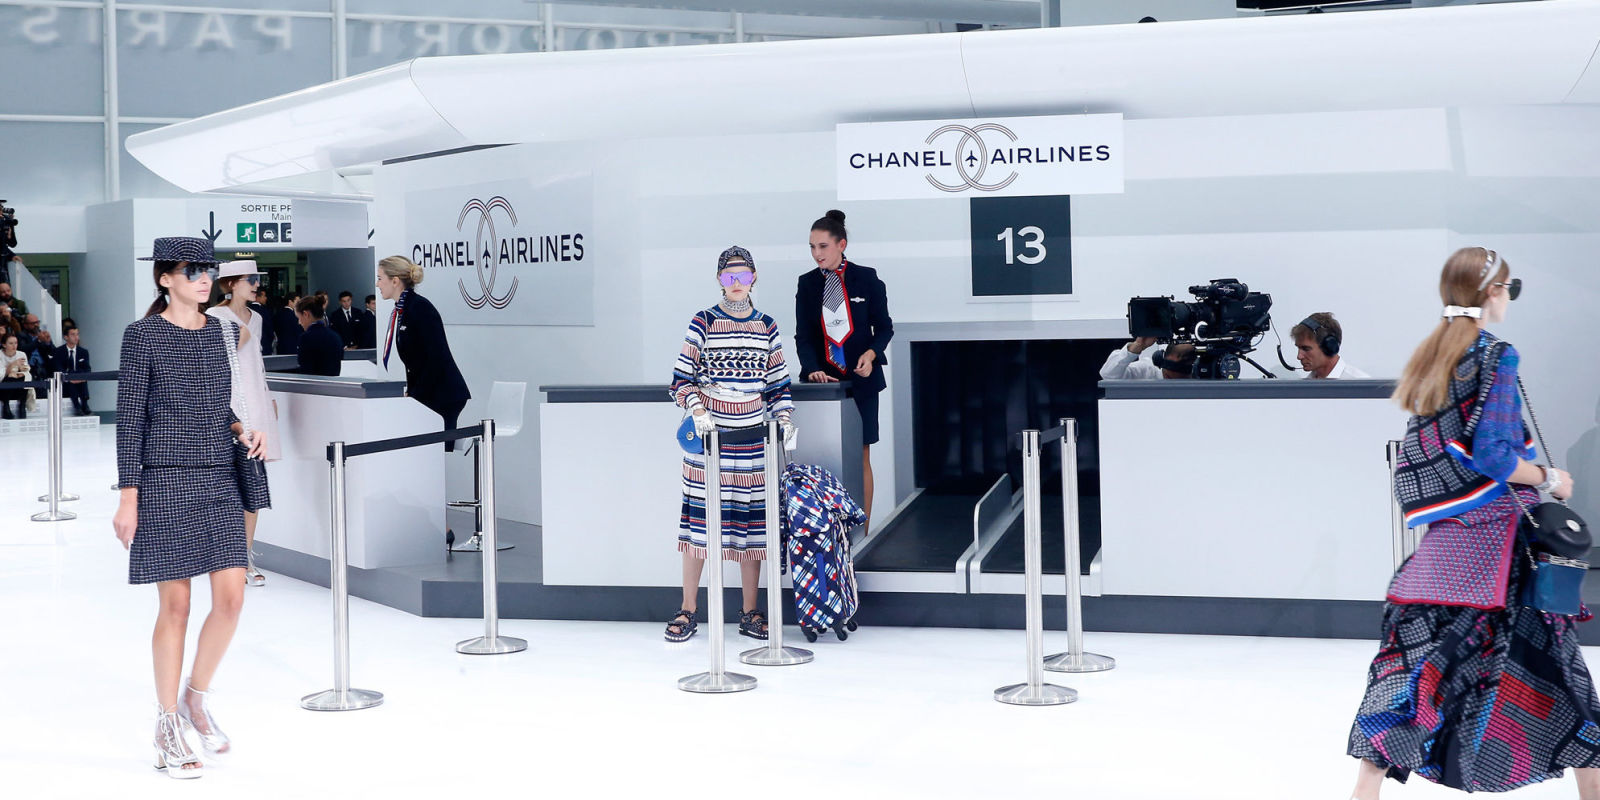 landscape-1444134276-hbz-chanel-airlines-index.jpg